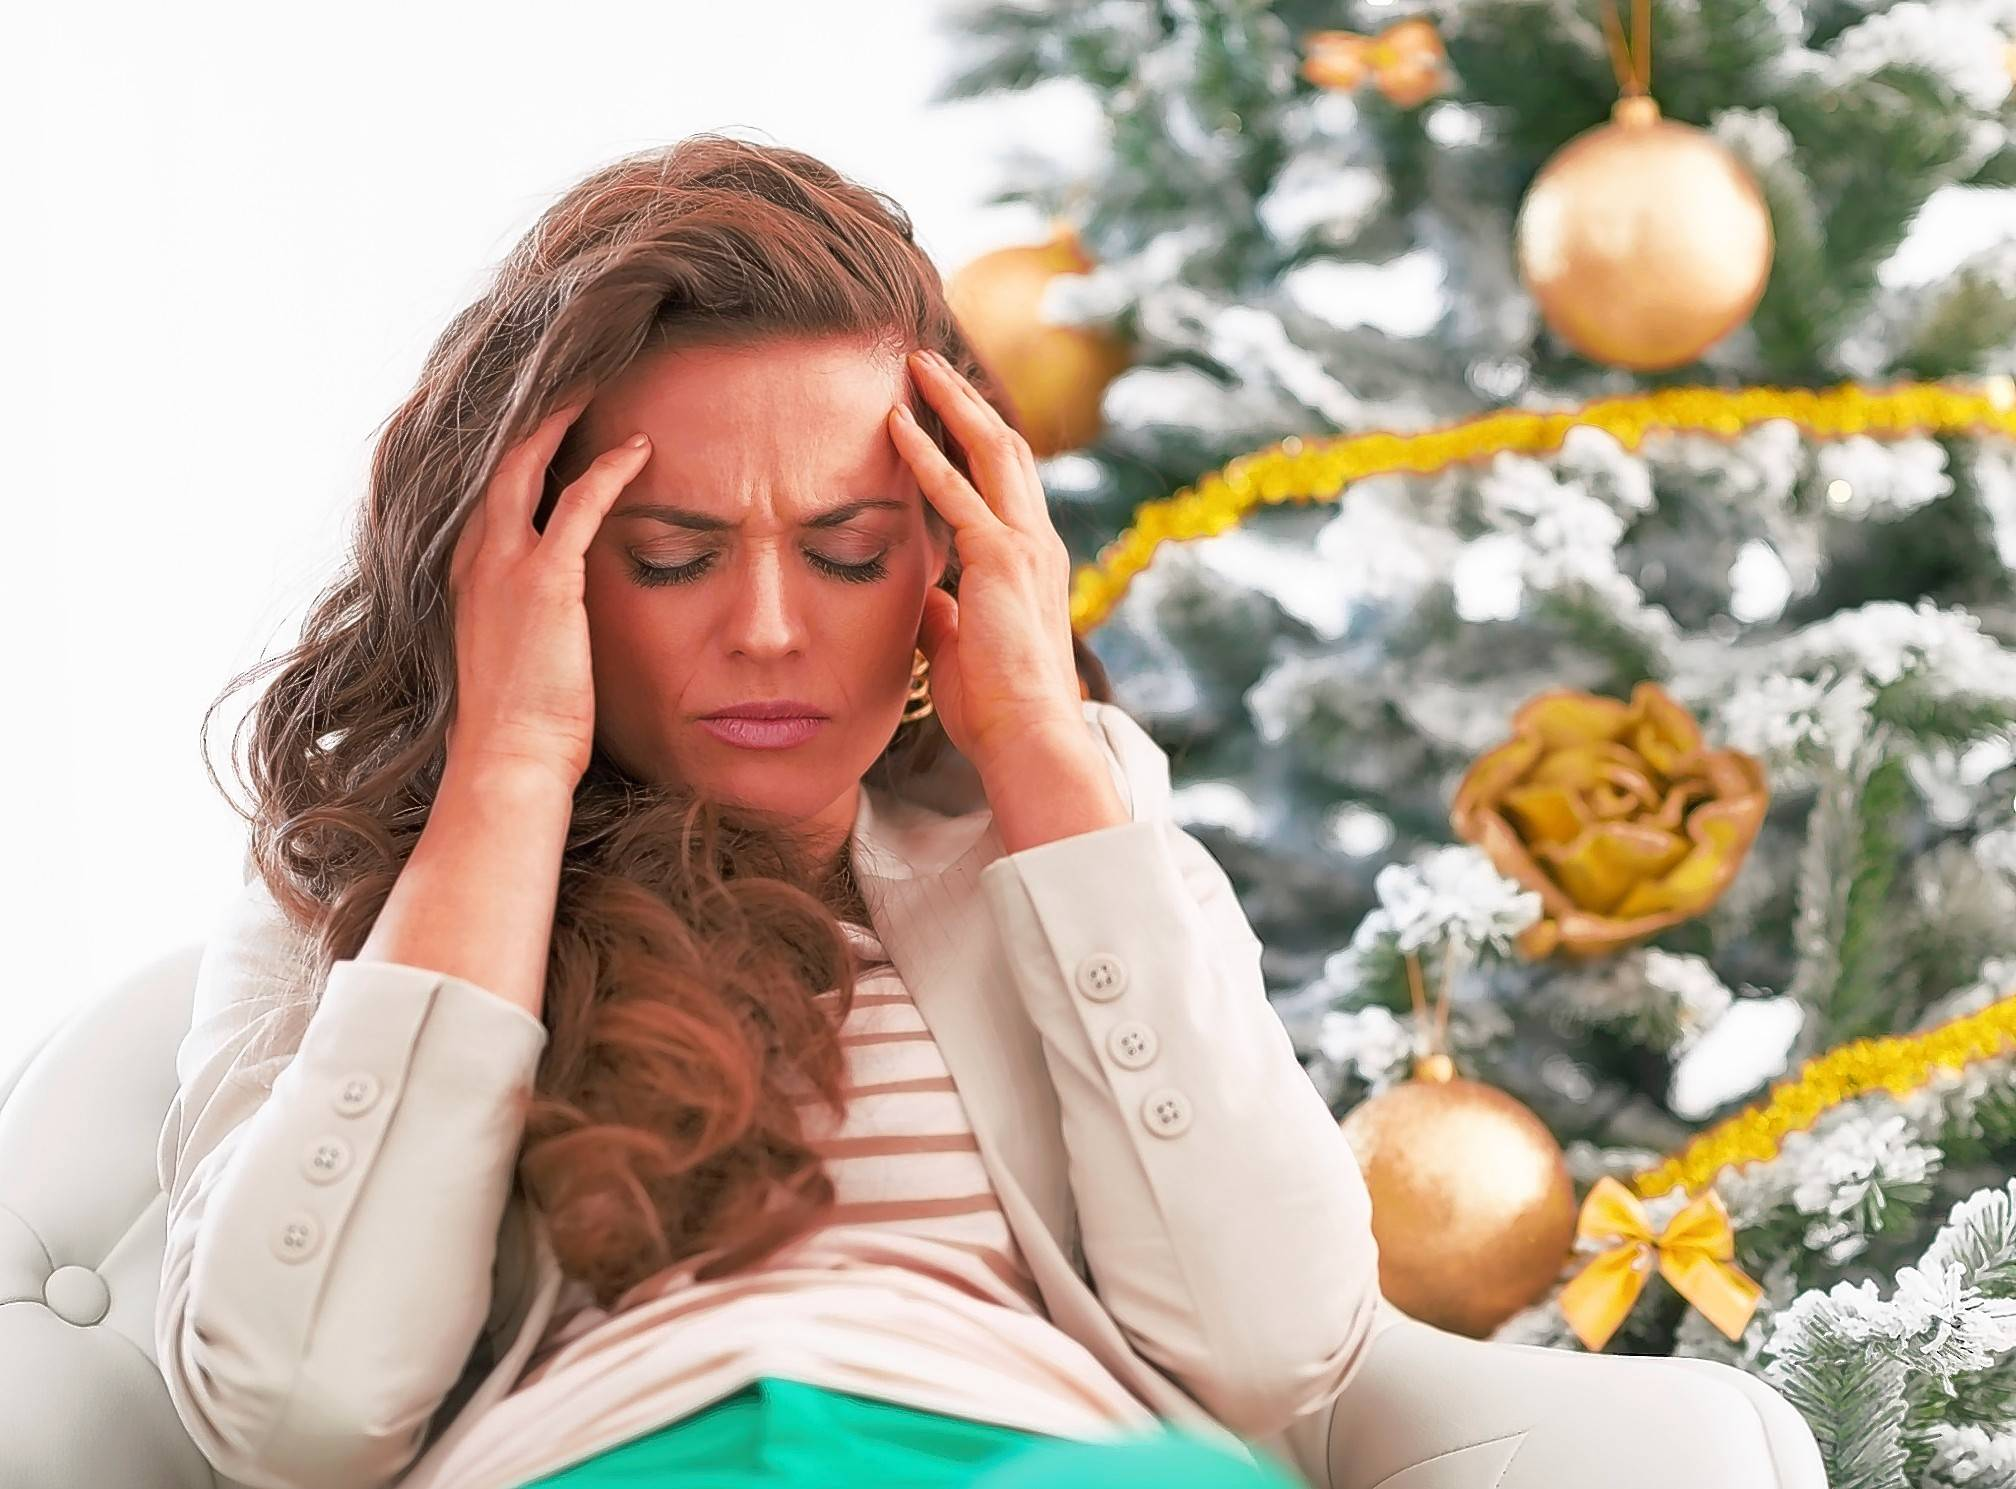 The holidays can be a trying time. Here's some tips on reducing stress during this season.